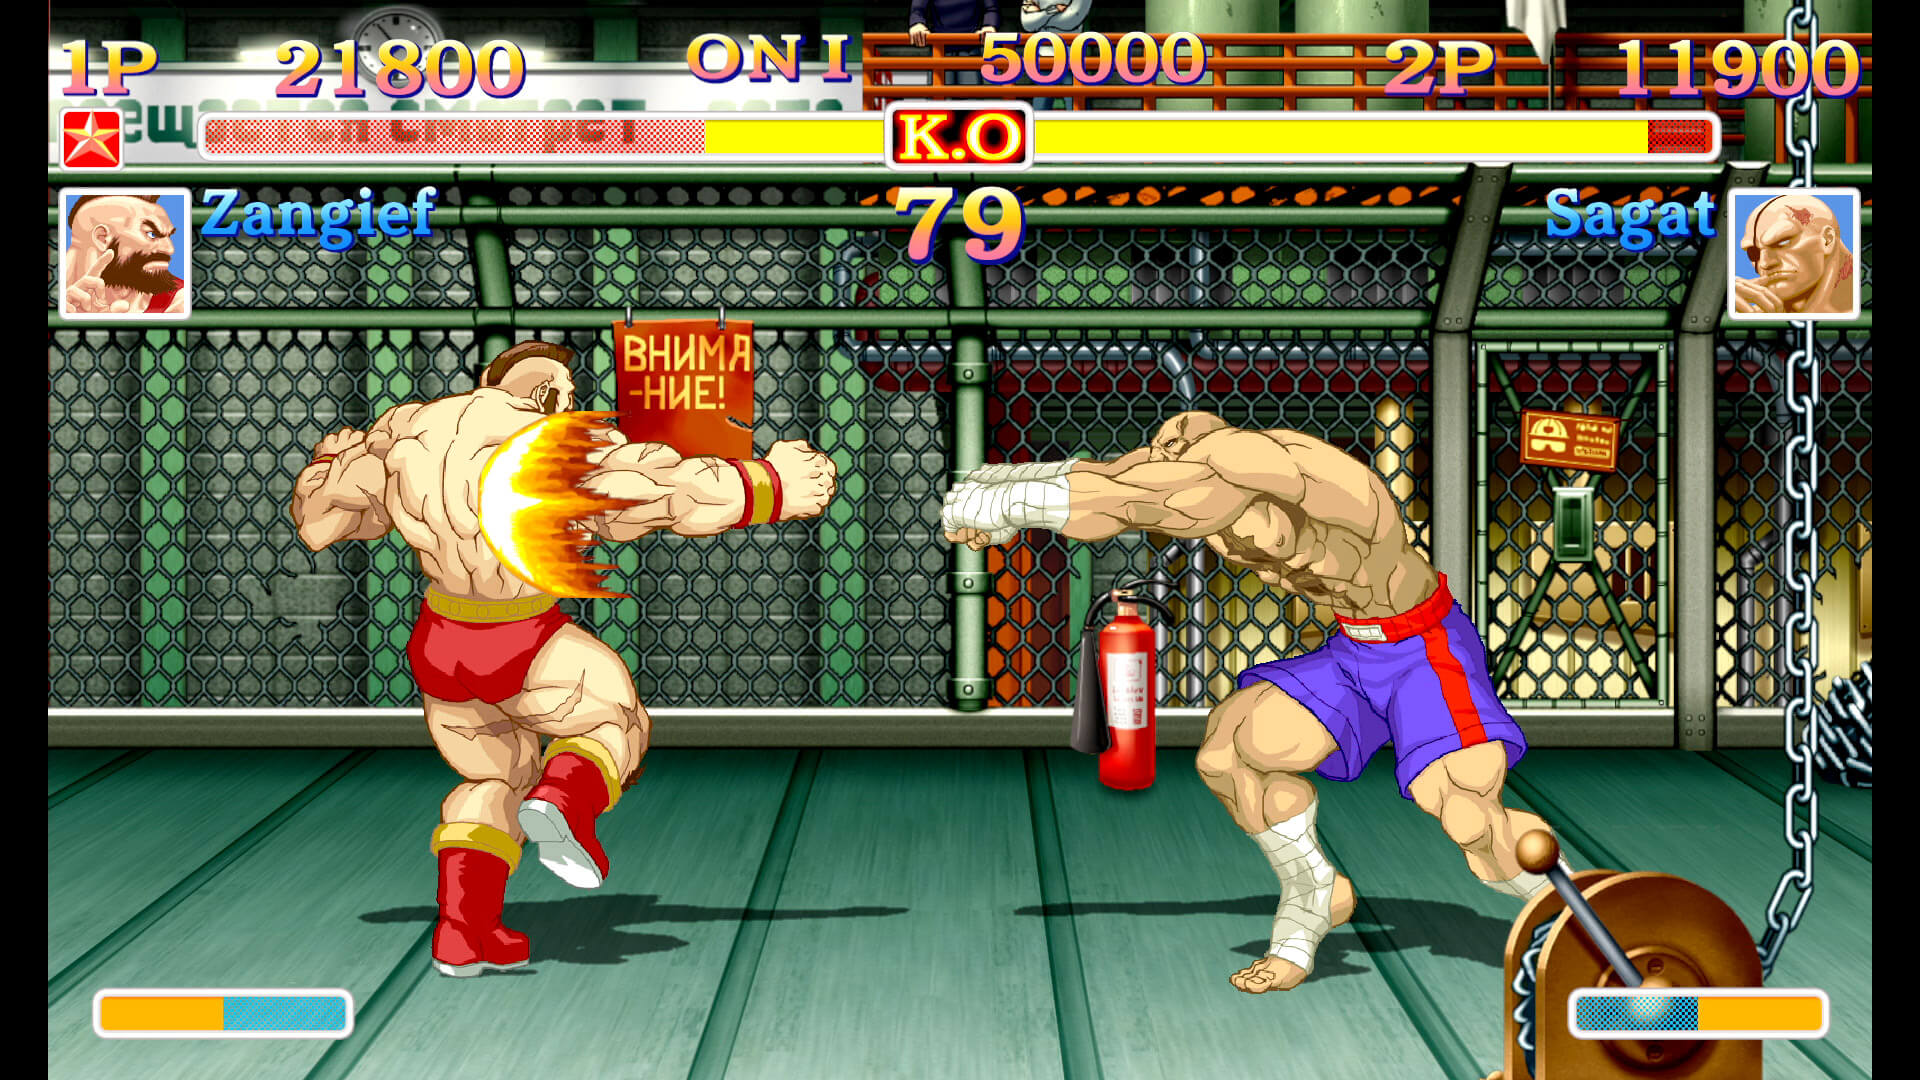 Ultra Street Fighter II (Image Credit: Polygon/Capcom)